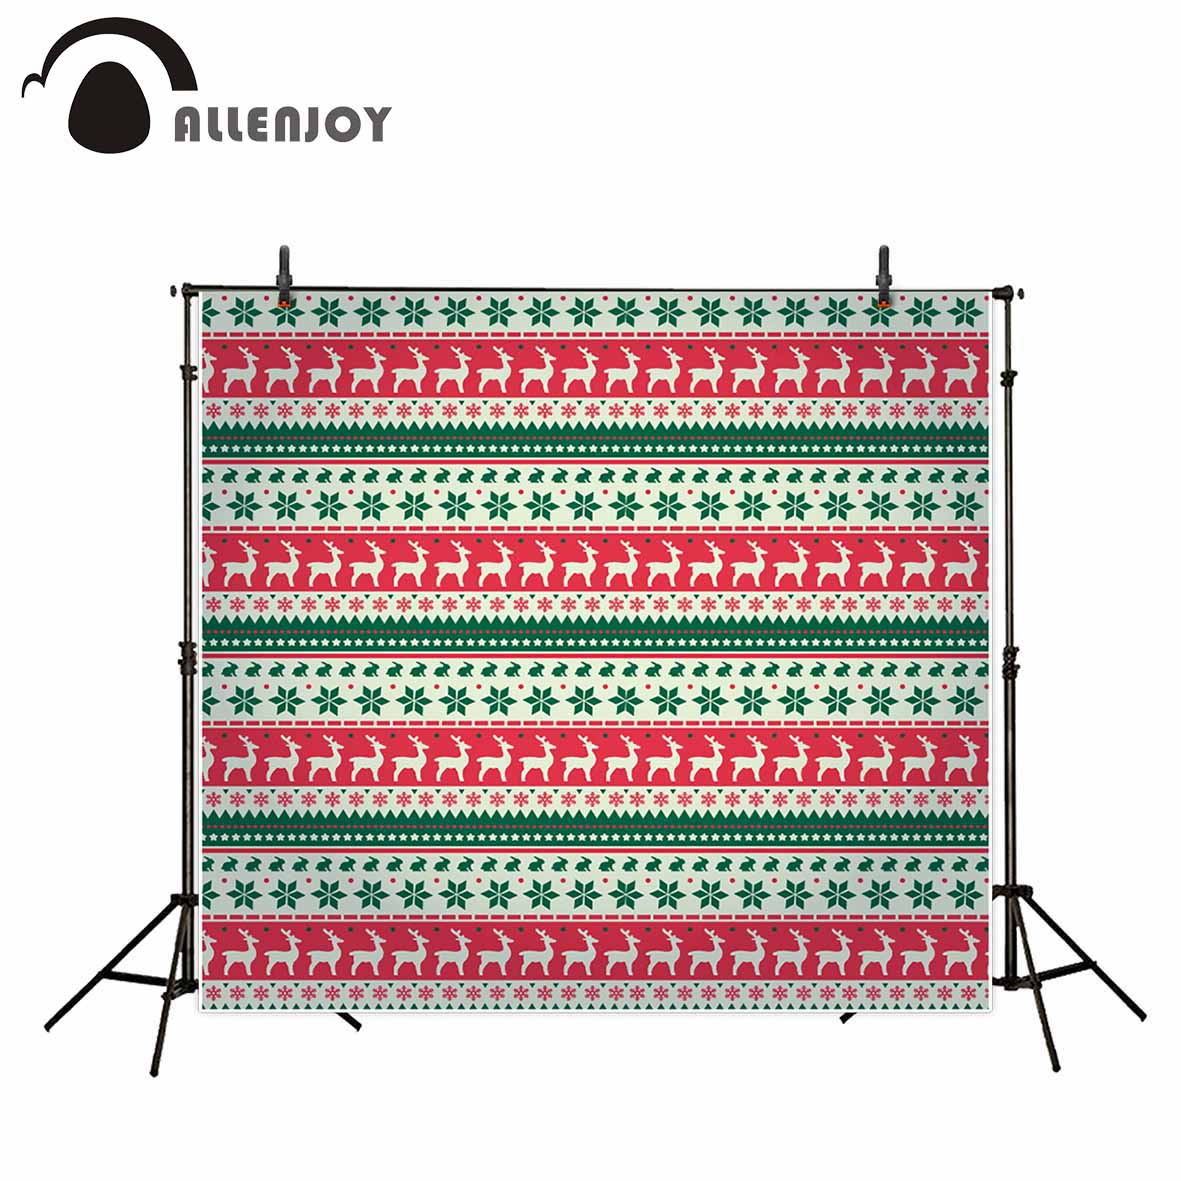 Allenjoy photography background Sweater repeats elk rabbit green christmas professional festival camera backdrop photographic